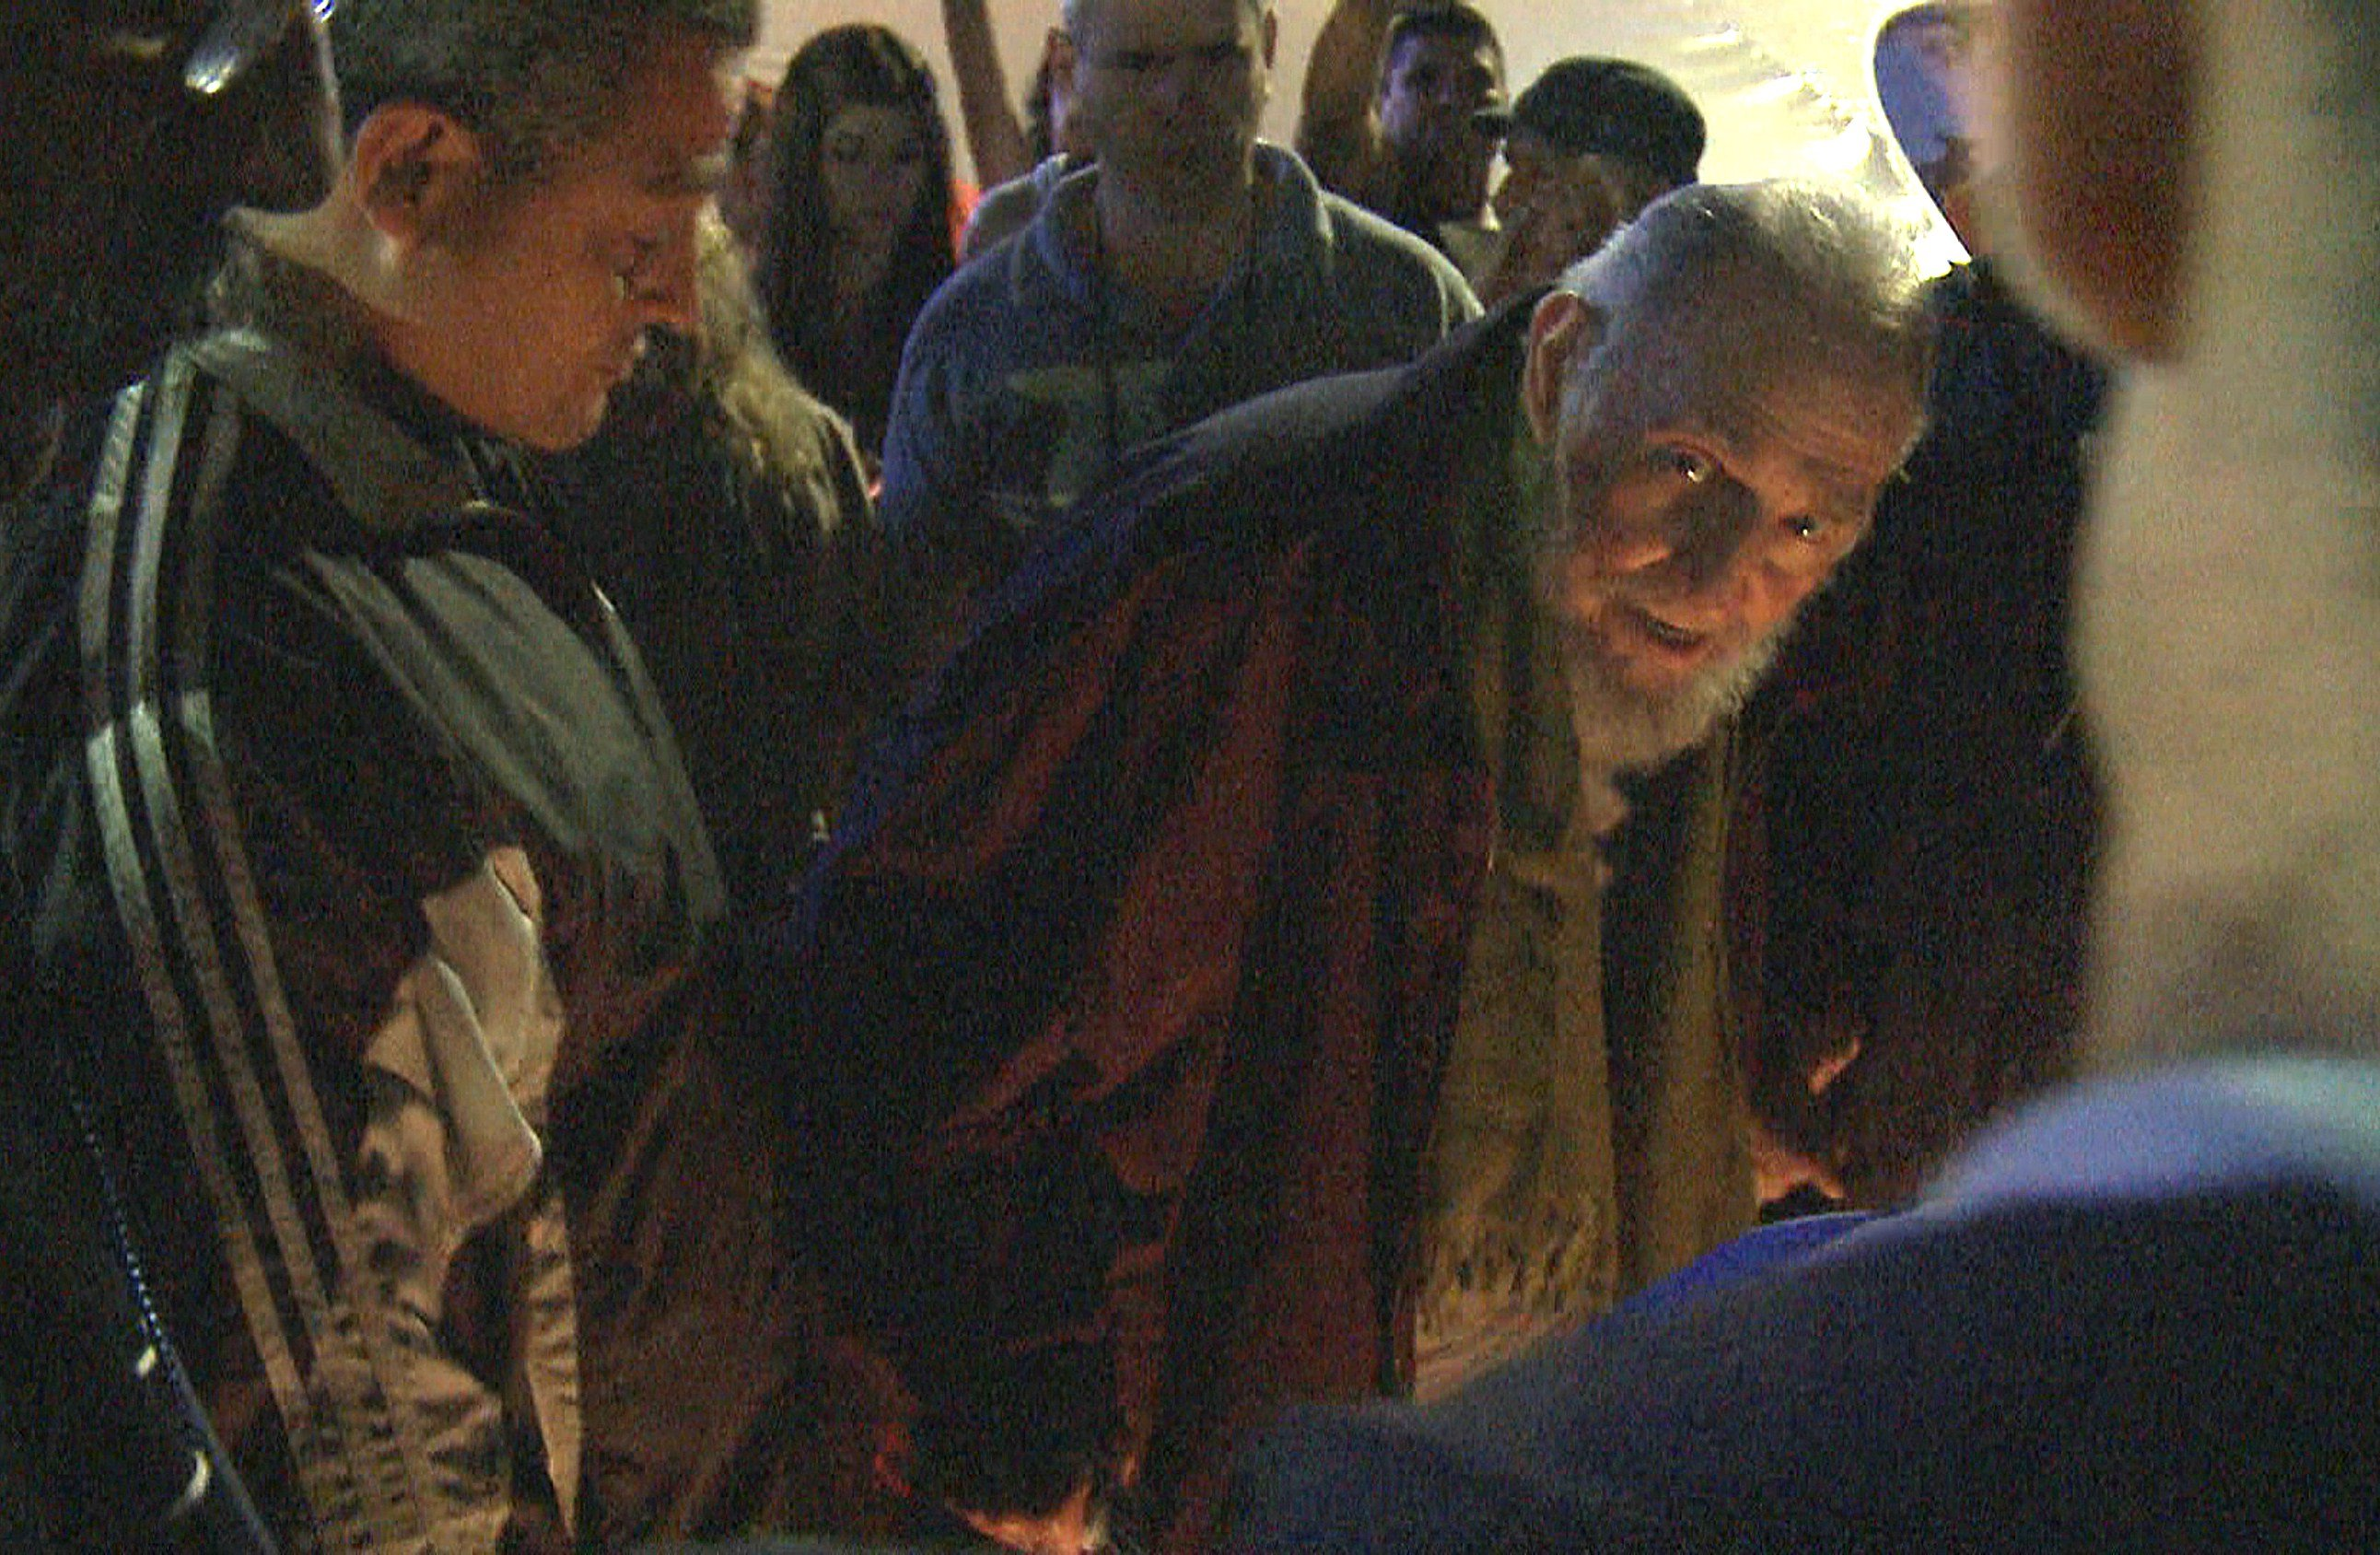 Former Cuban president, Fidel Castro, appeared in public for the first time in nine months, Jan. 8, 2014, when he attended the opening of Kcho Romerillo, Laboratory for Art, in Havana, Cuba, as seen in this image grab from a video.